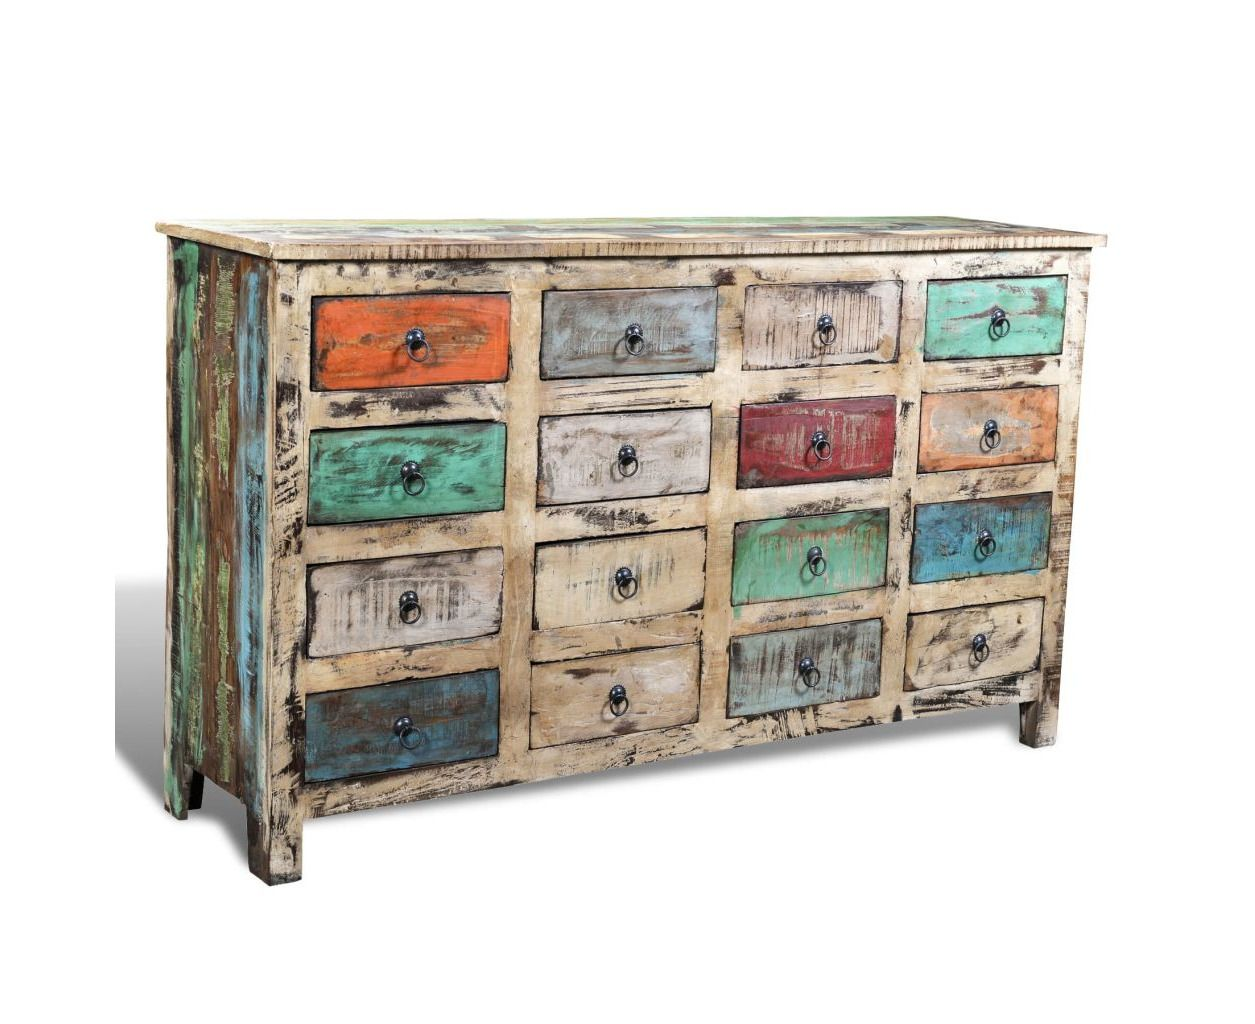 Reclaimed Wood Recycled Cabinet Multicolour Storage W 16 Drawers Vintage Chest With Images Wood Storage Cabinets Reclaimed Wood Cabinet Wood Storage